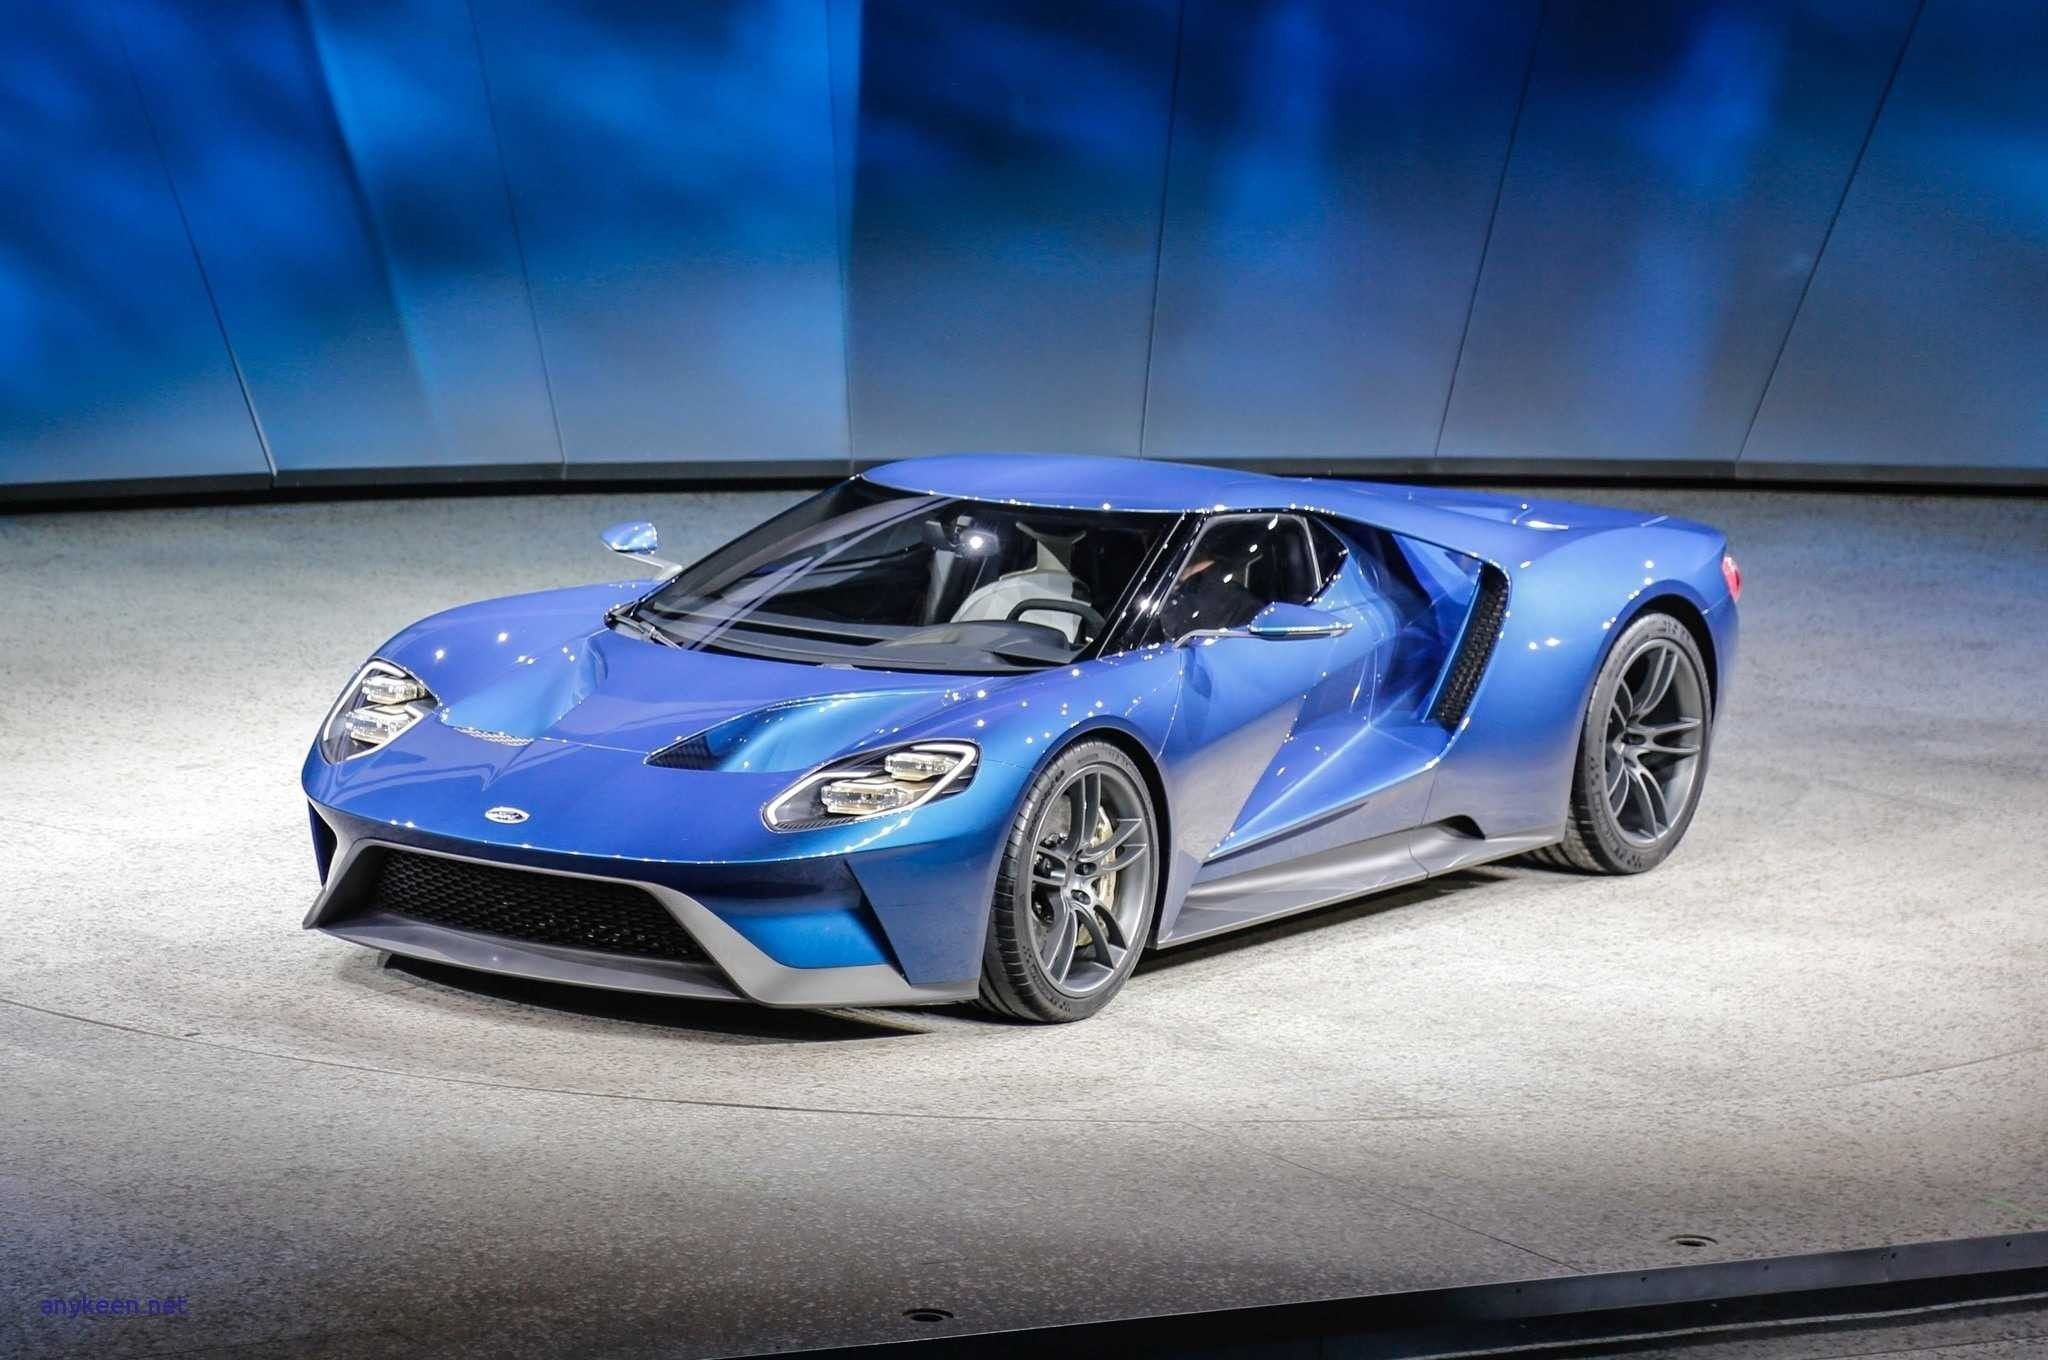 2019 Ford Gt Supercar Release Specs And Review Ford Gt Ford Gt